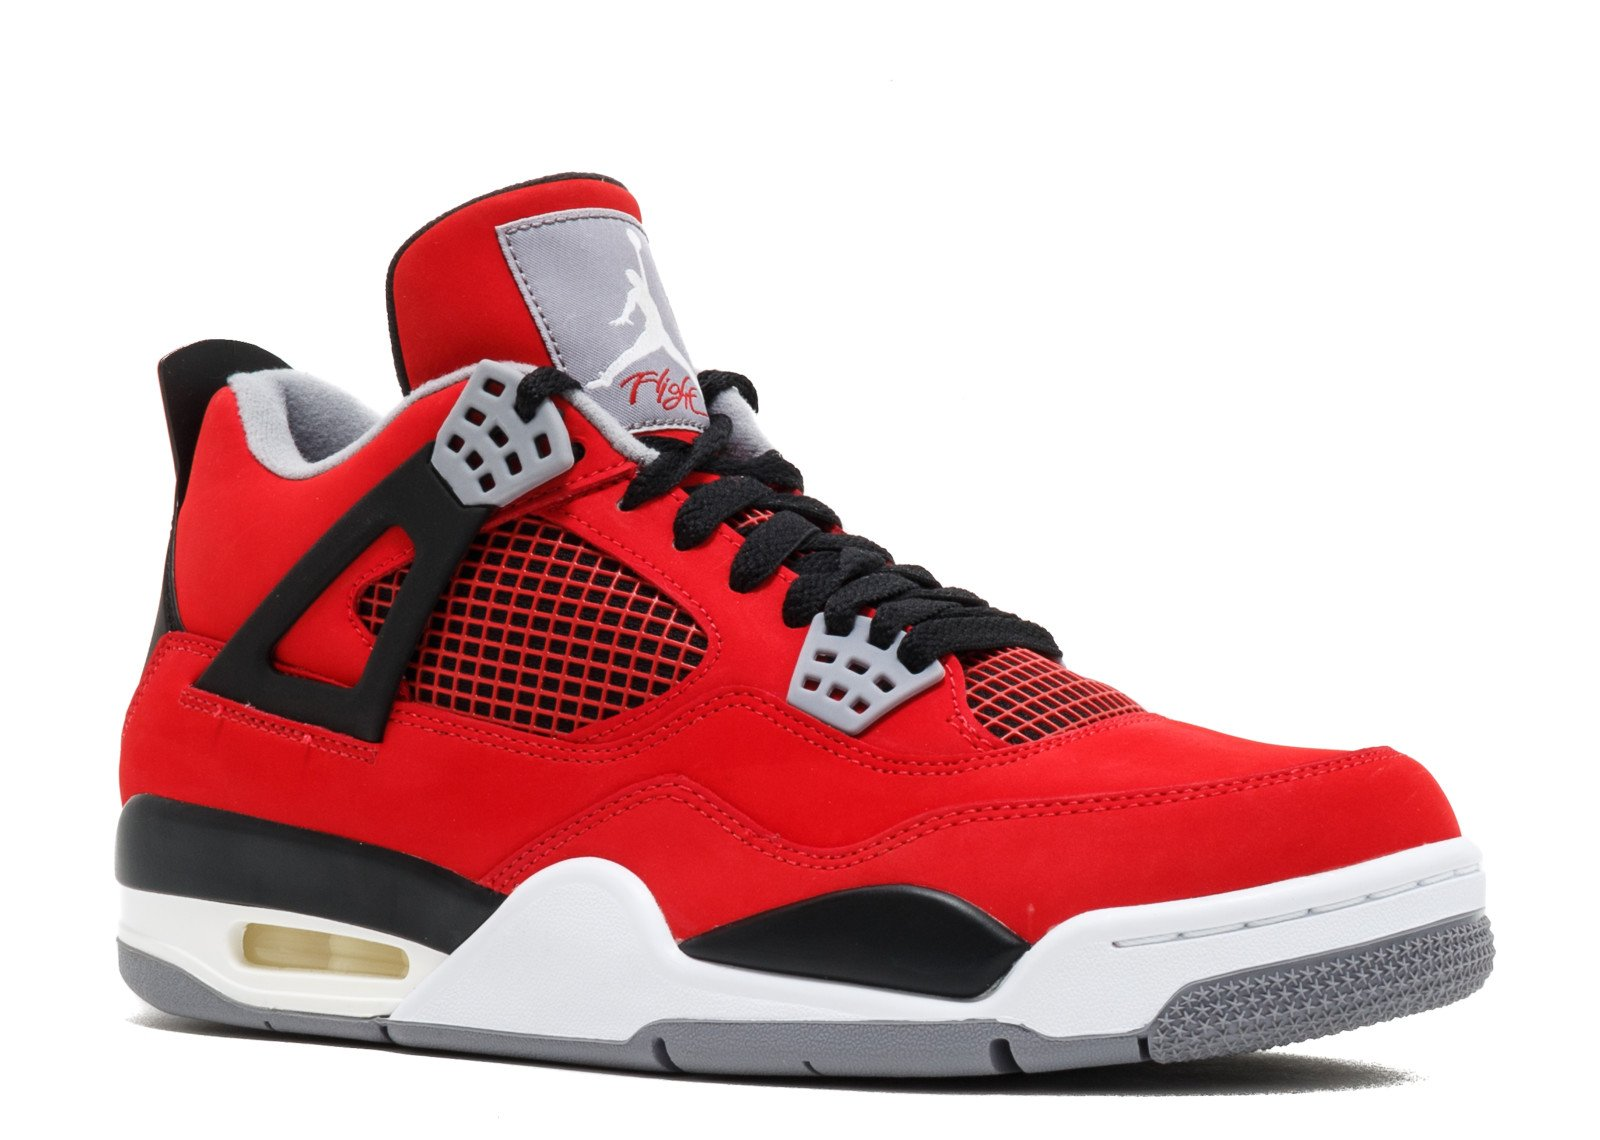 Jordan Air 4 Retro Toro Bravo Men's Shoes Fire Red/White-Black-Cement Grey 308497-603-7.5